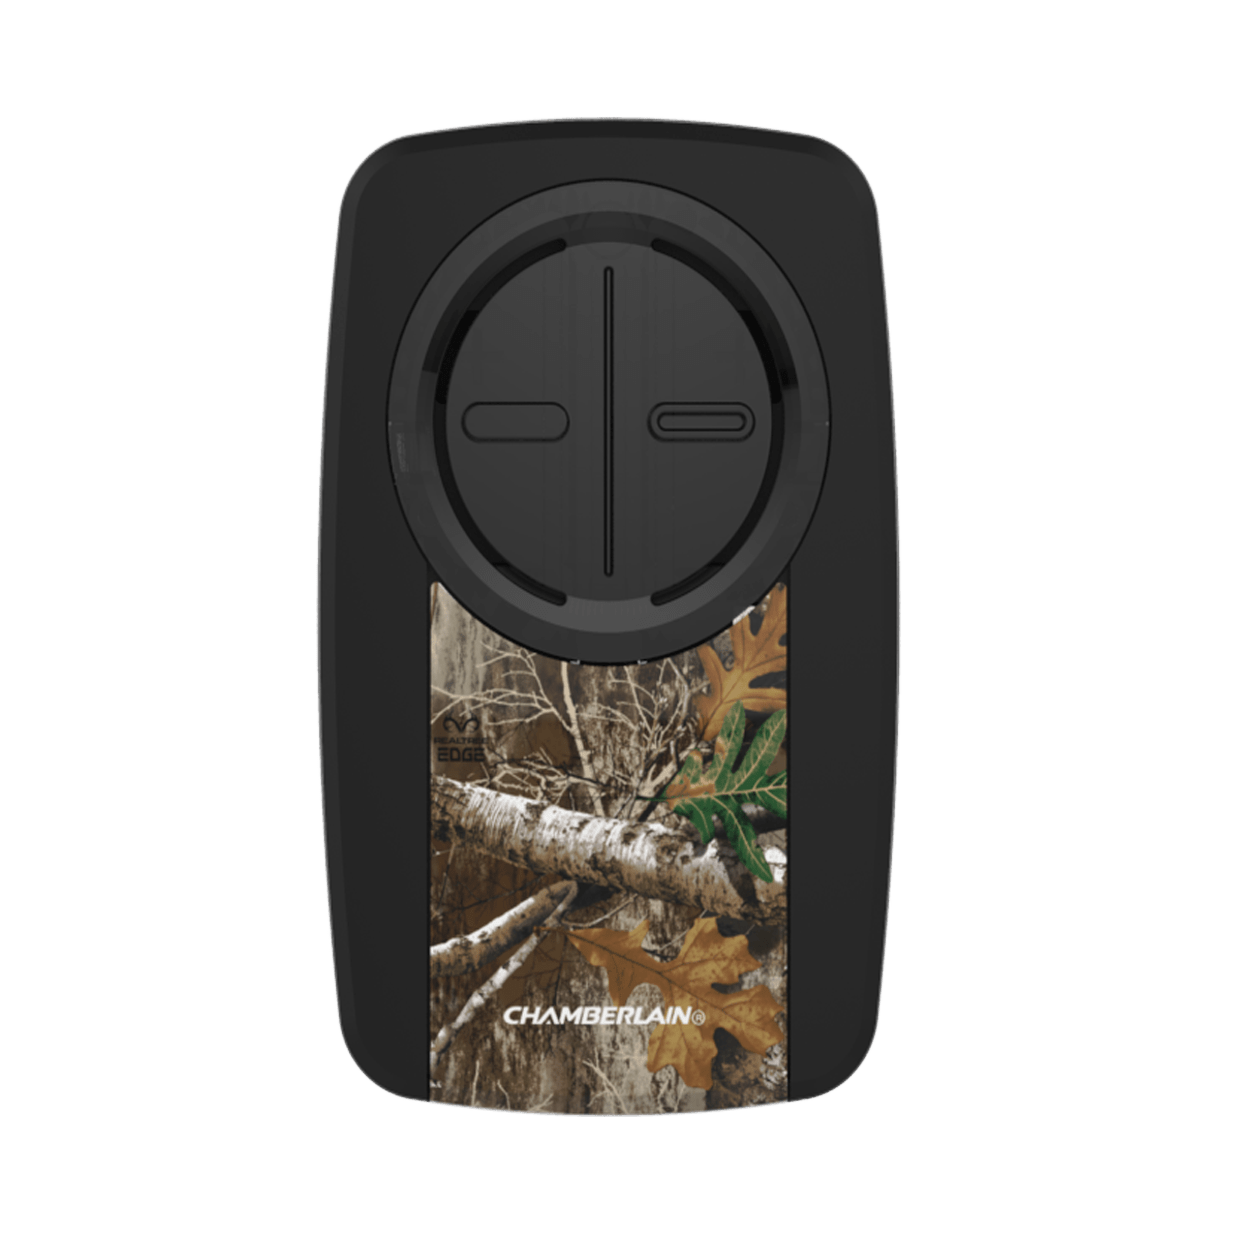 Garage Door Opener Remote Clicker Original Clicker Universal Garage Door Remote In Realtree Edge